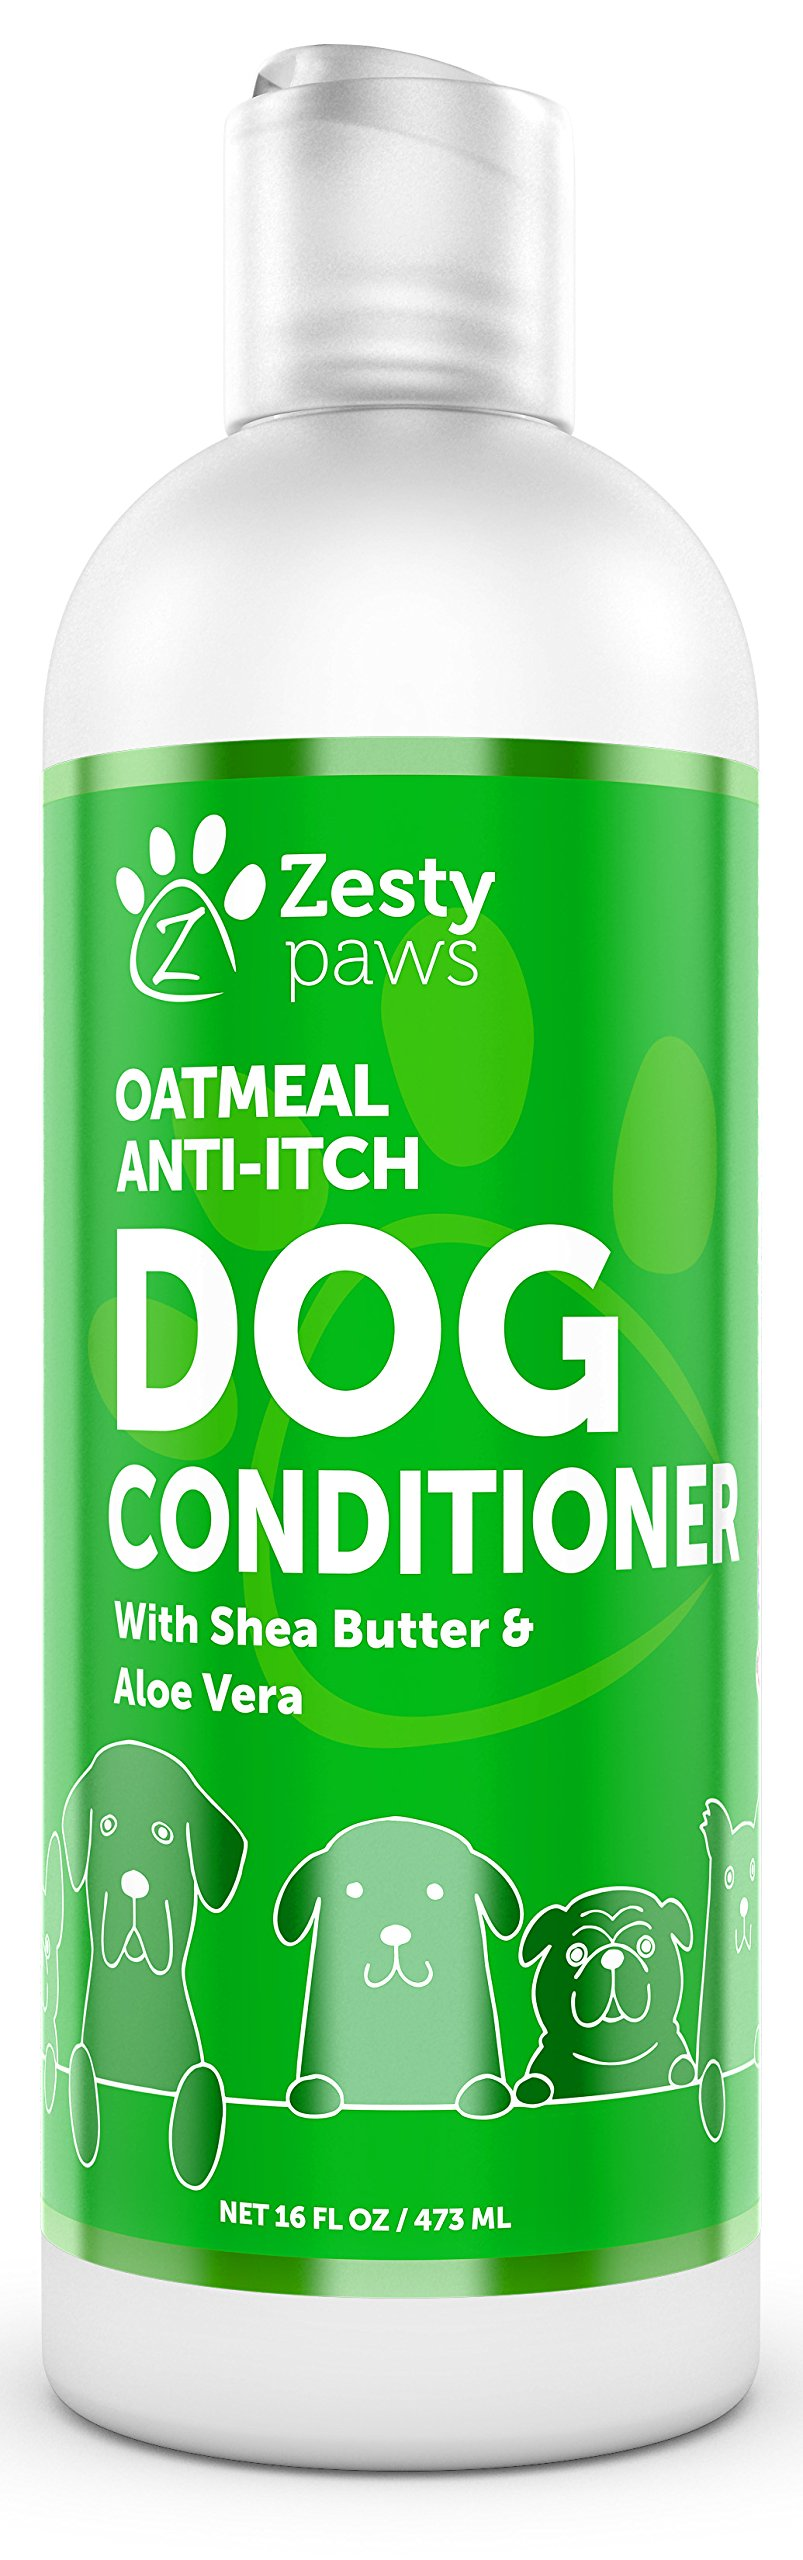 Zesty Paws Dog Conditioner with Oatmeal, Aloe Vera & Shea Butter - Natural Grooming Pet Wash for Skin & Coat - Anti Itch Formula - Vanilla Bean Scent - 16 OZ